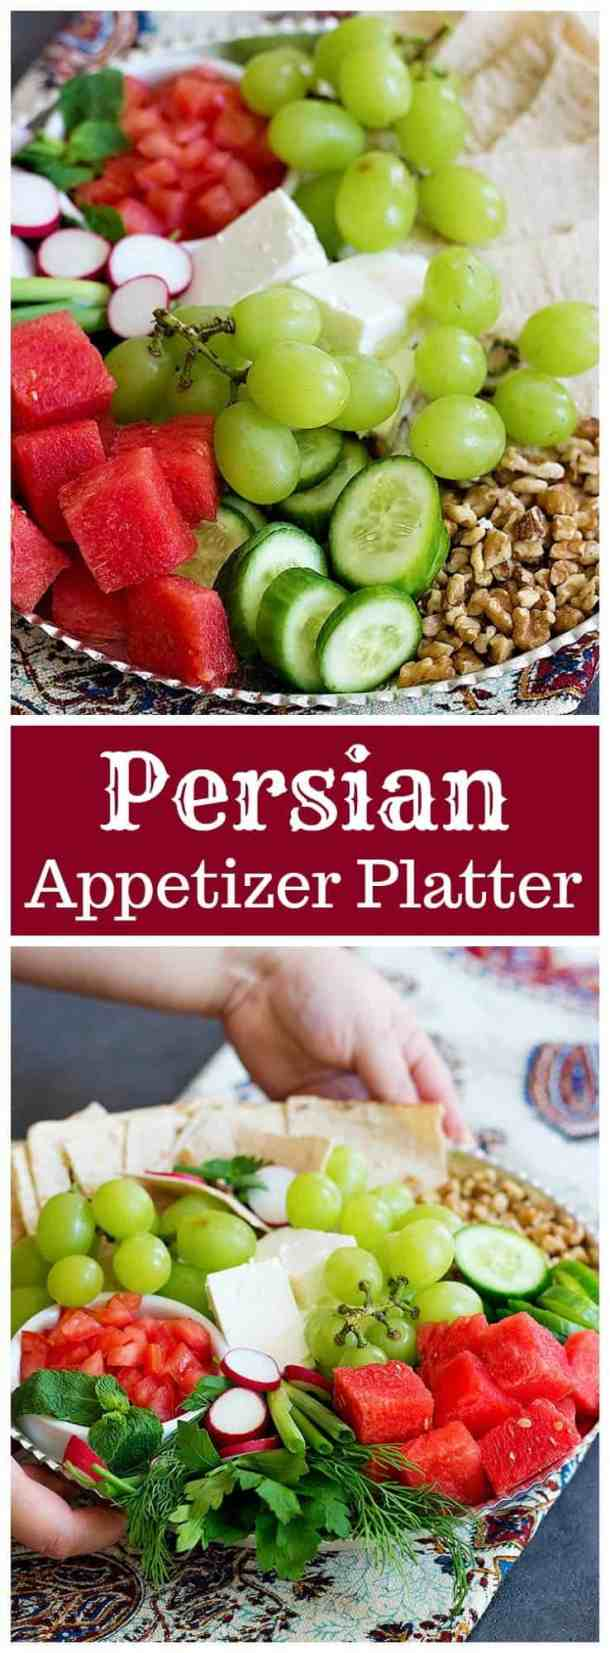 Persian Appetizer Platter is a great choice for gatherings and parties. This platter can be served as an afternoon snack too, it'll be great with a cup of tea!